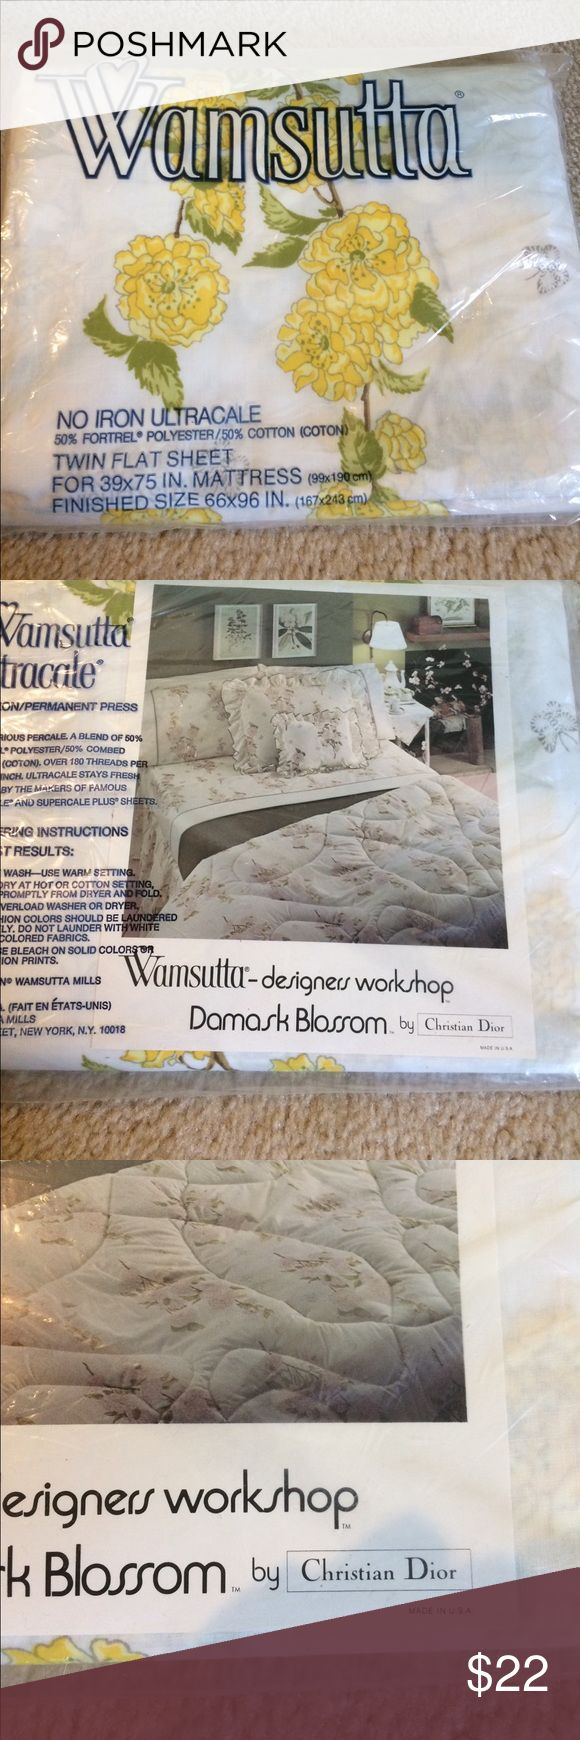 "Wamsutta by Christian Dior twin flat sheet. New Wamsutta by Christian Dior twin flat sheet. I have 3 sheets. No iron ultracale. 50% polyester, 50% cotton. For matress 39""x 75"", finished size 66""x96"" Wamsutta by Christian Dior Other"